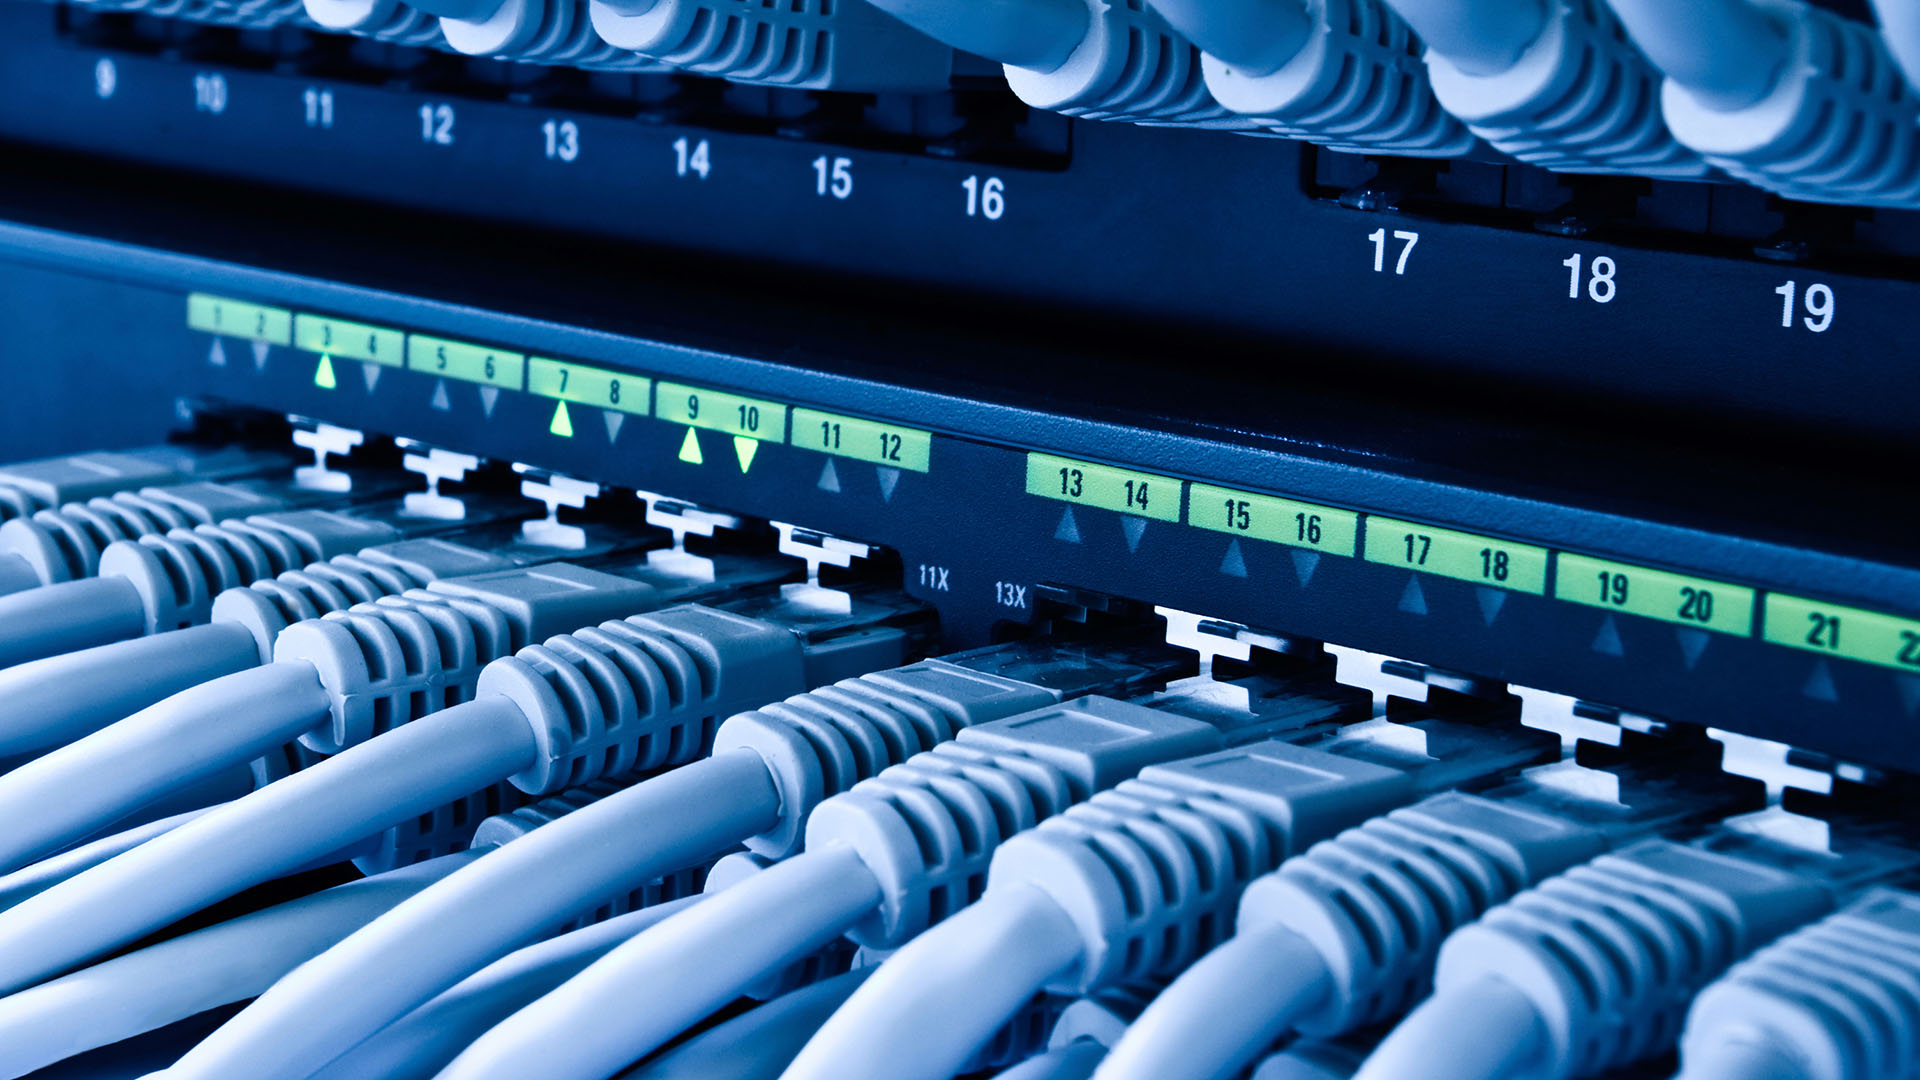 network-cables-wallpaper-high-definition-For-Widescreen-Wallpaper